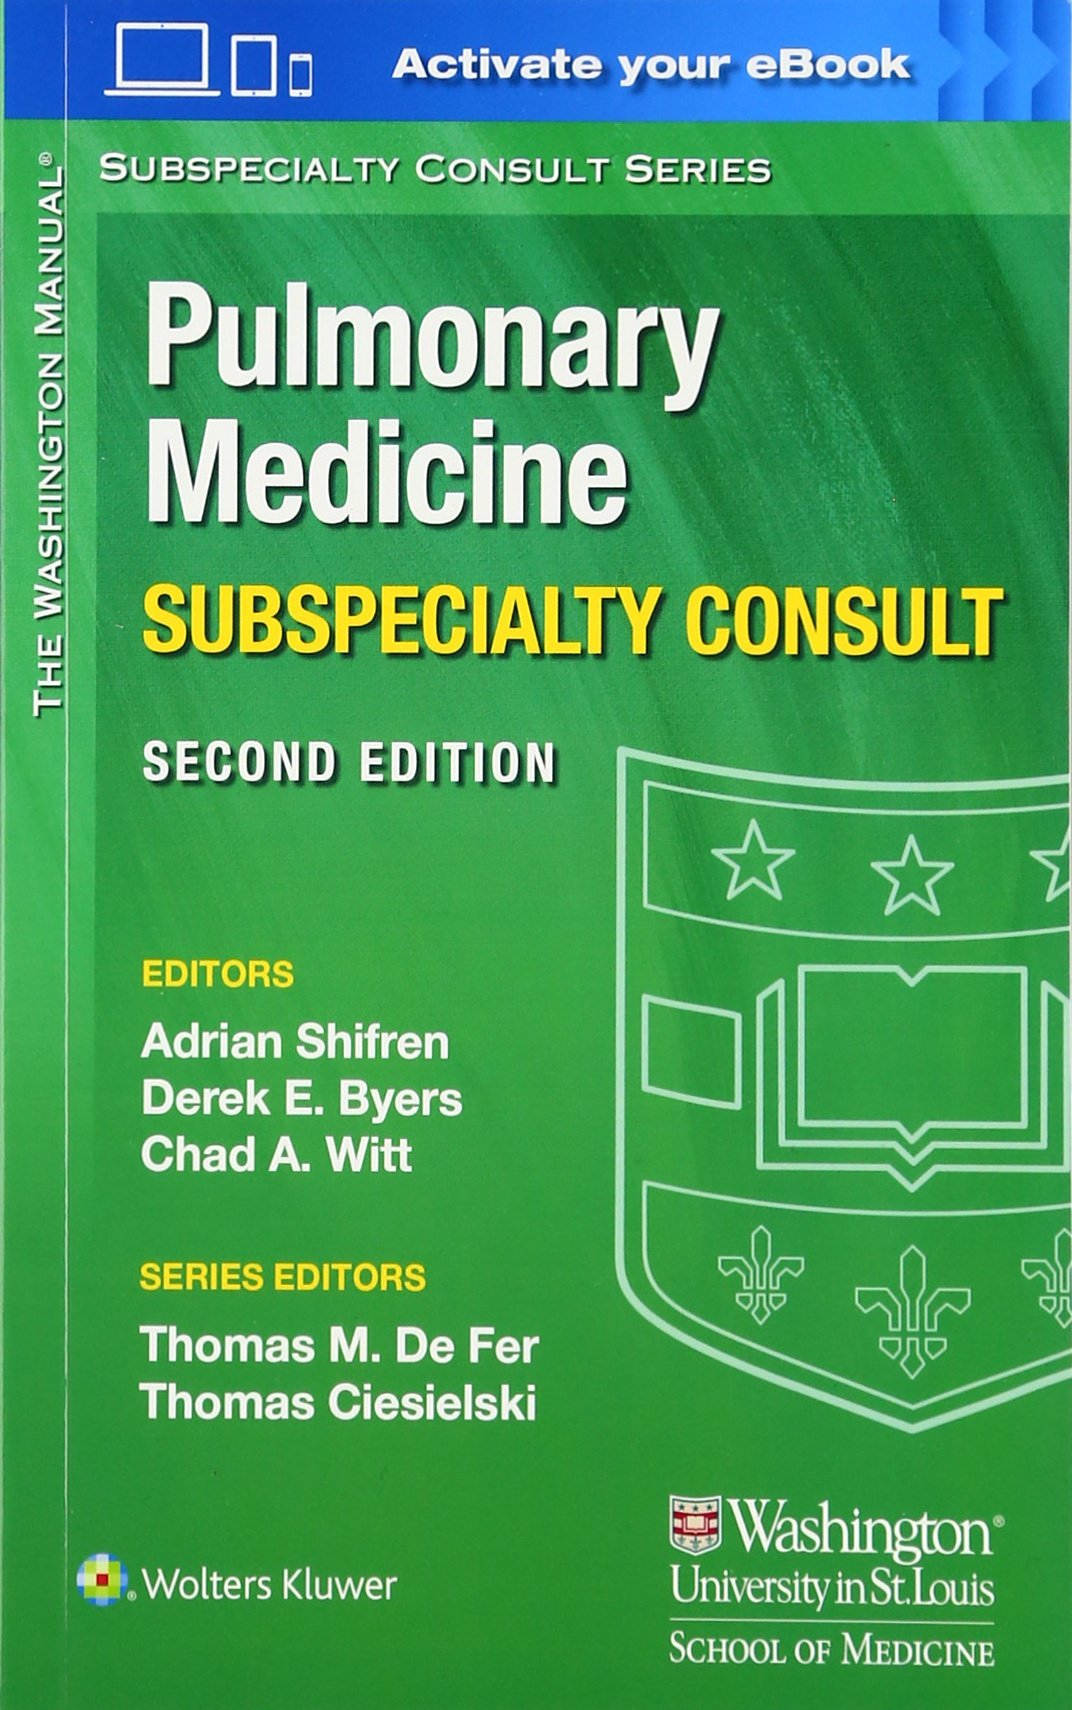 Buy The Washington Manual Pulmonary Medicine Subspecialty Consult (The  Washington Manual Subspecialty Consult Series) Book Online at Low Prices in  India ...